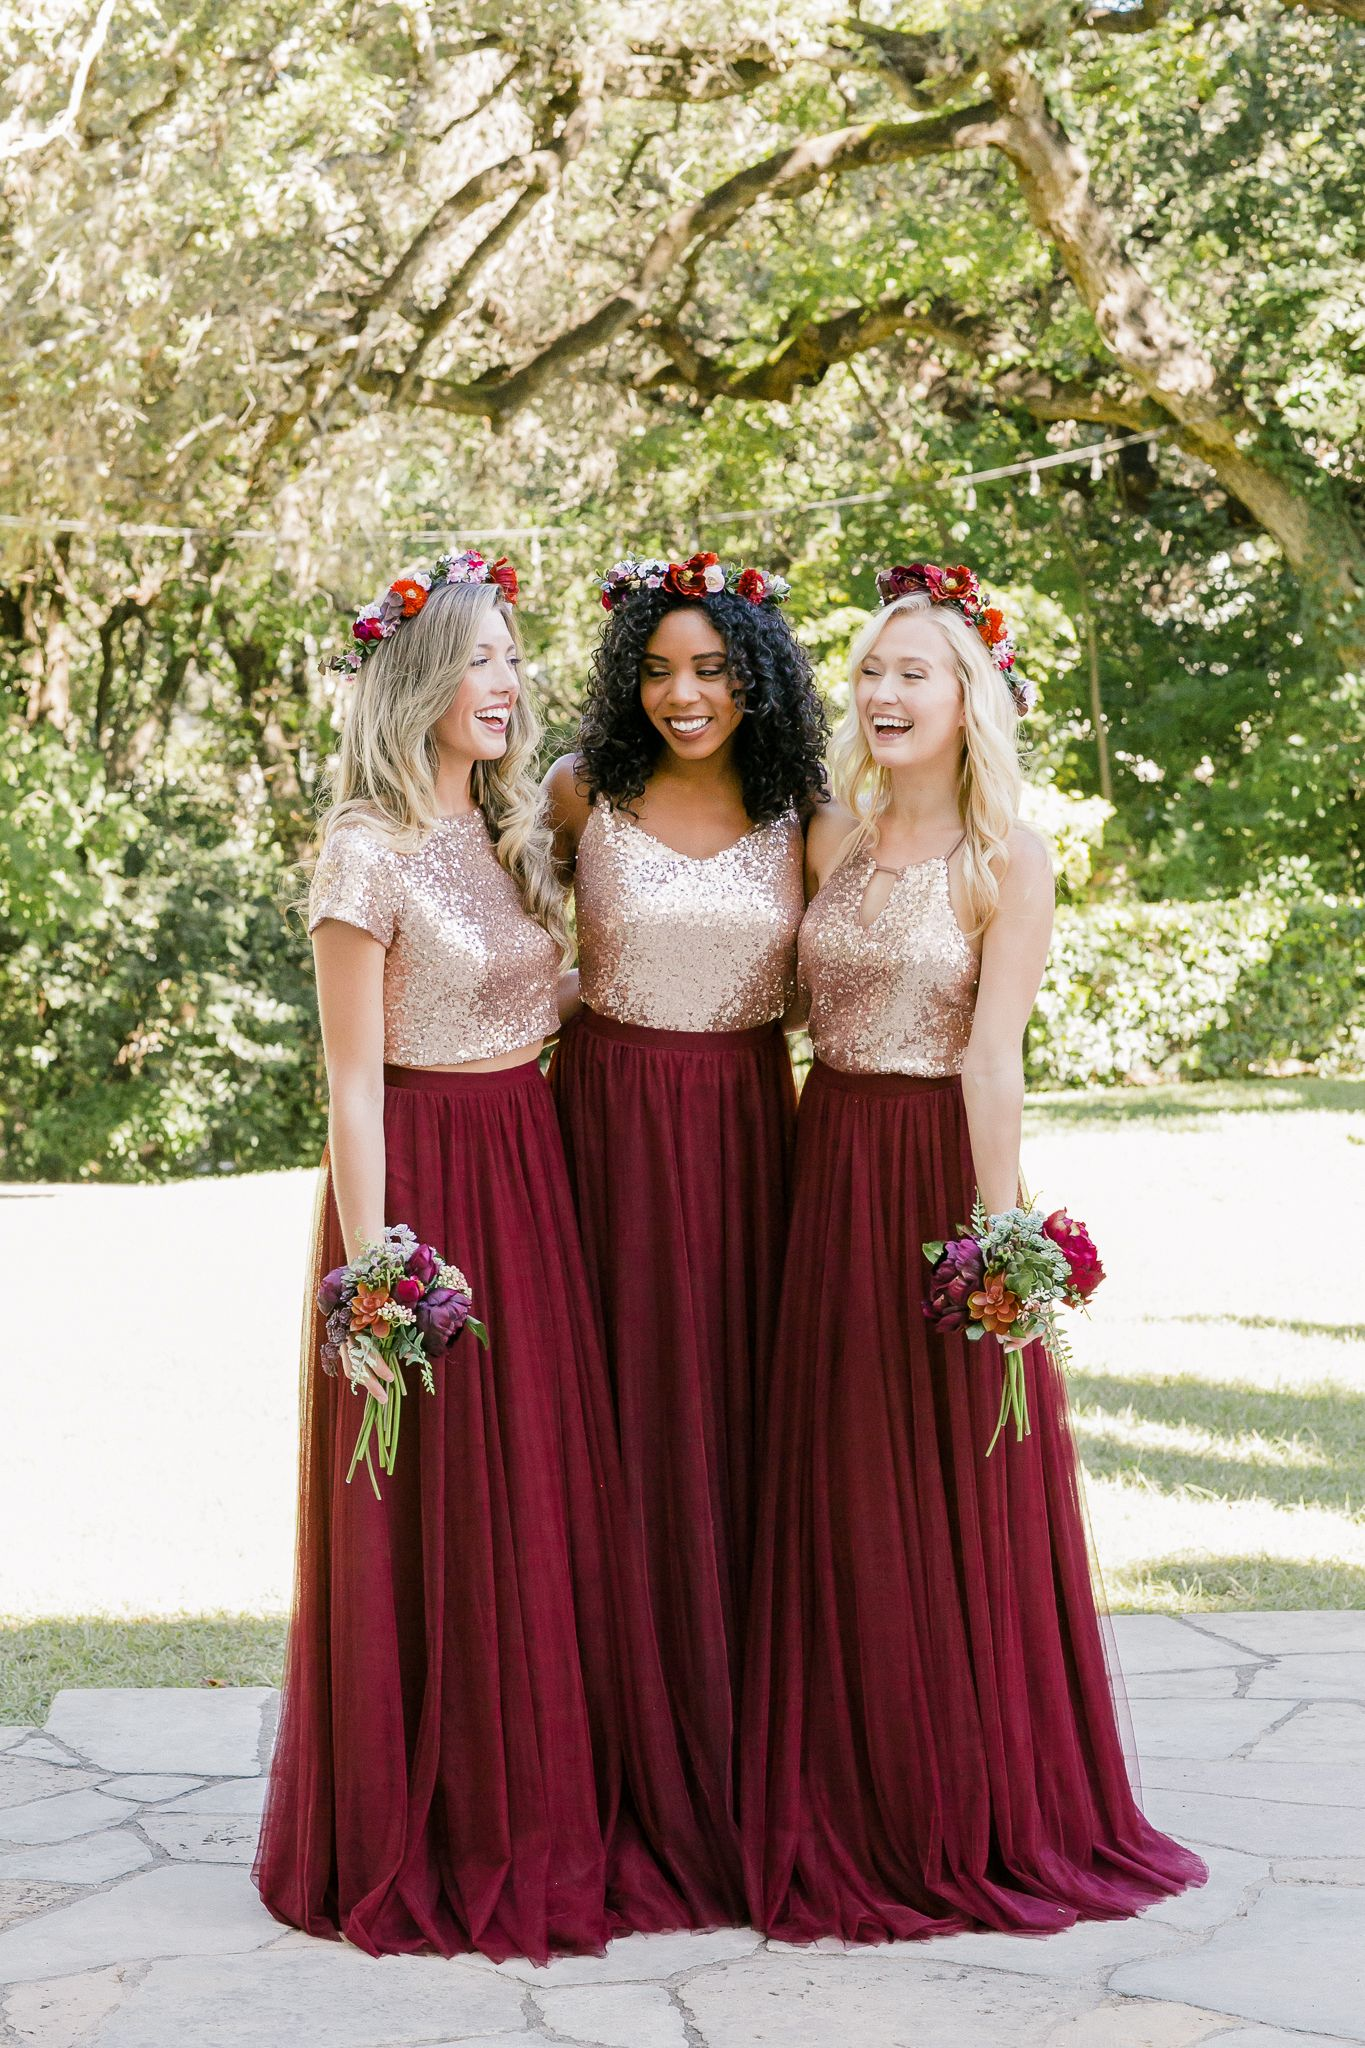 3177865a050 Revelry has a wide selection of unique bridesmaids dresses including tulle  skirts